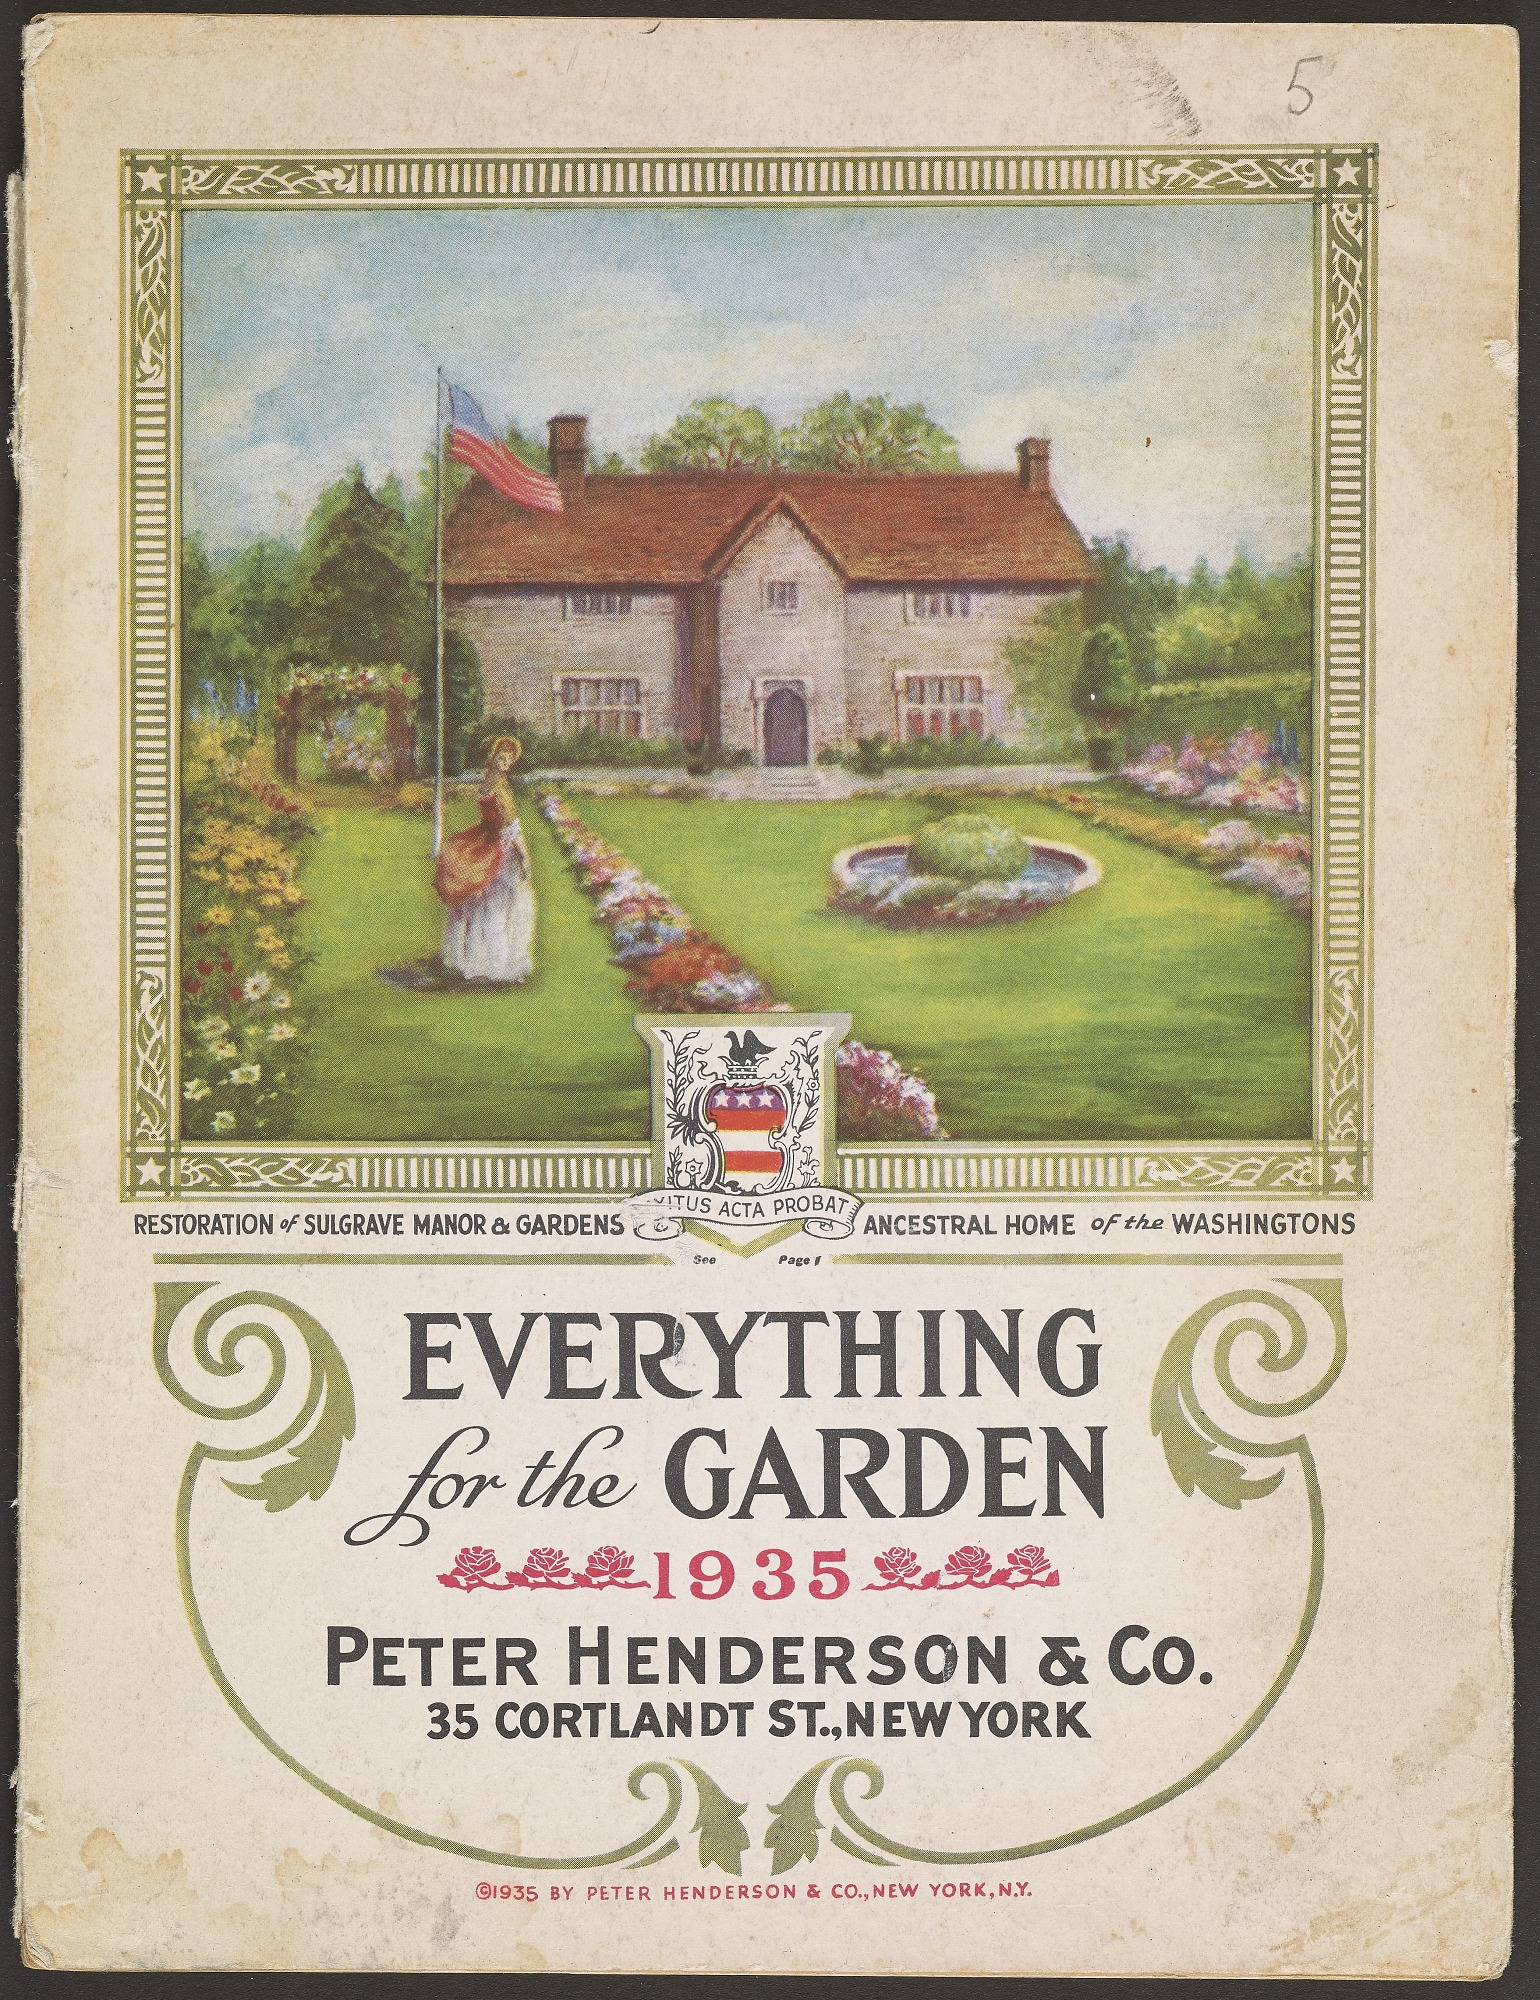 This catalog features Sulgrave Manor, George Washington's ancestral home in England.